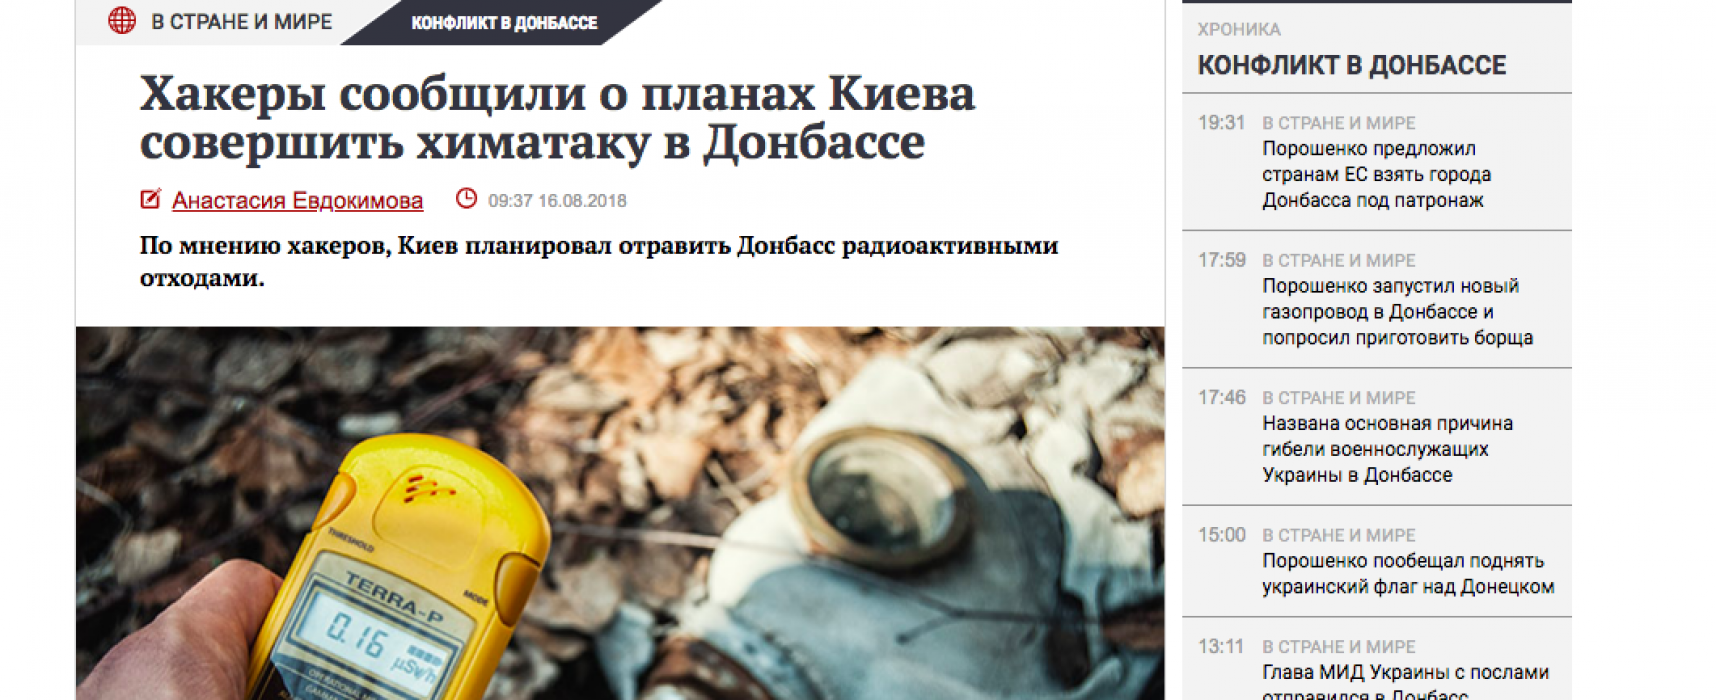 Fake: Kyiv to Poison Donbas Water Supply and Blame Russia